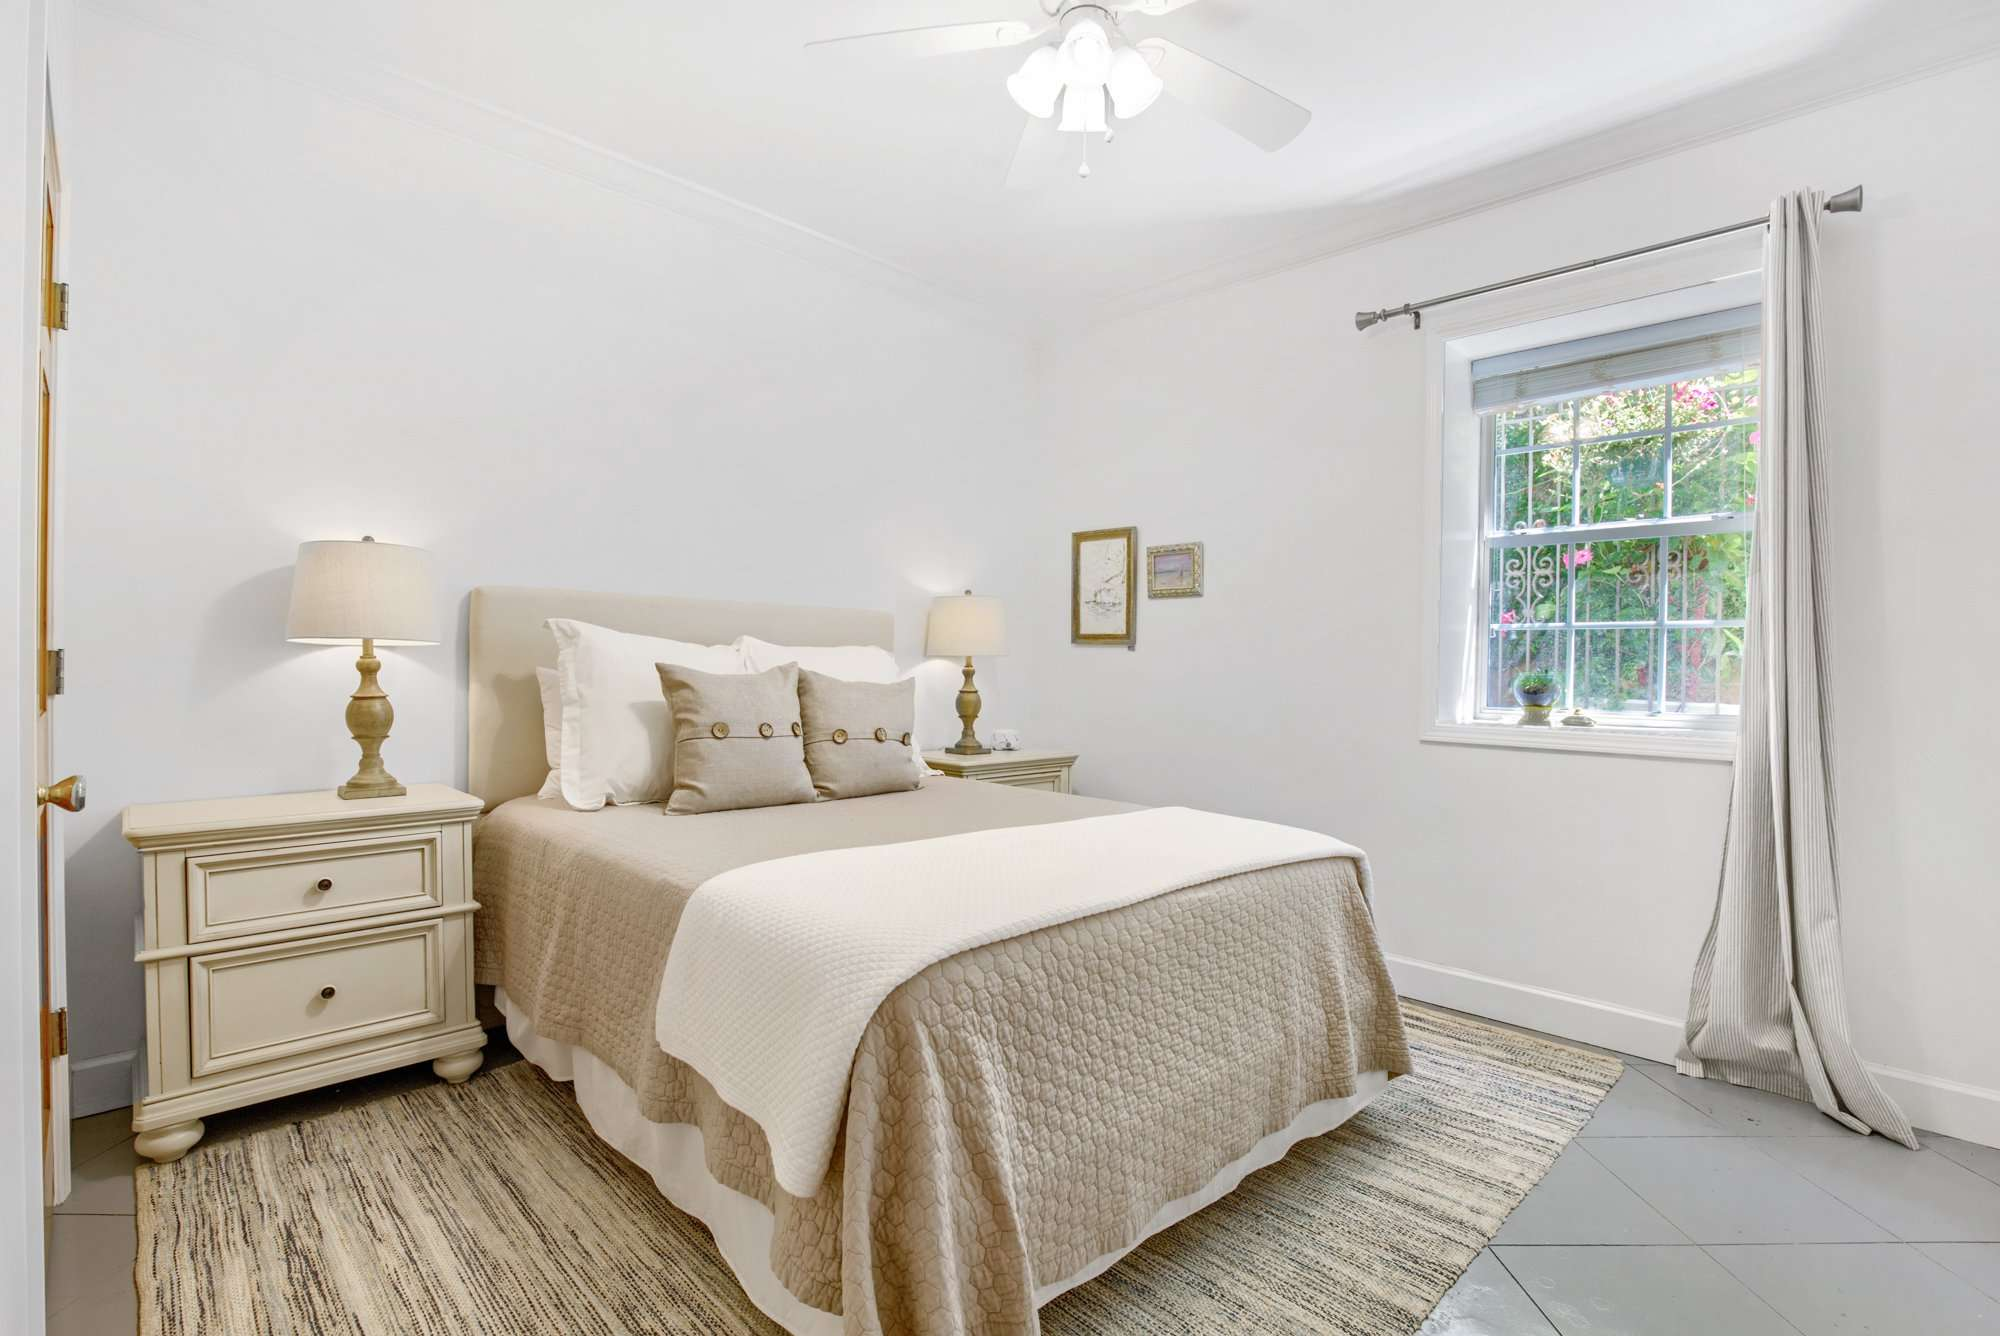 Dogwood Queen Bedroom Jubilee Suites Fairhope, AL